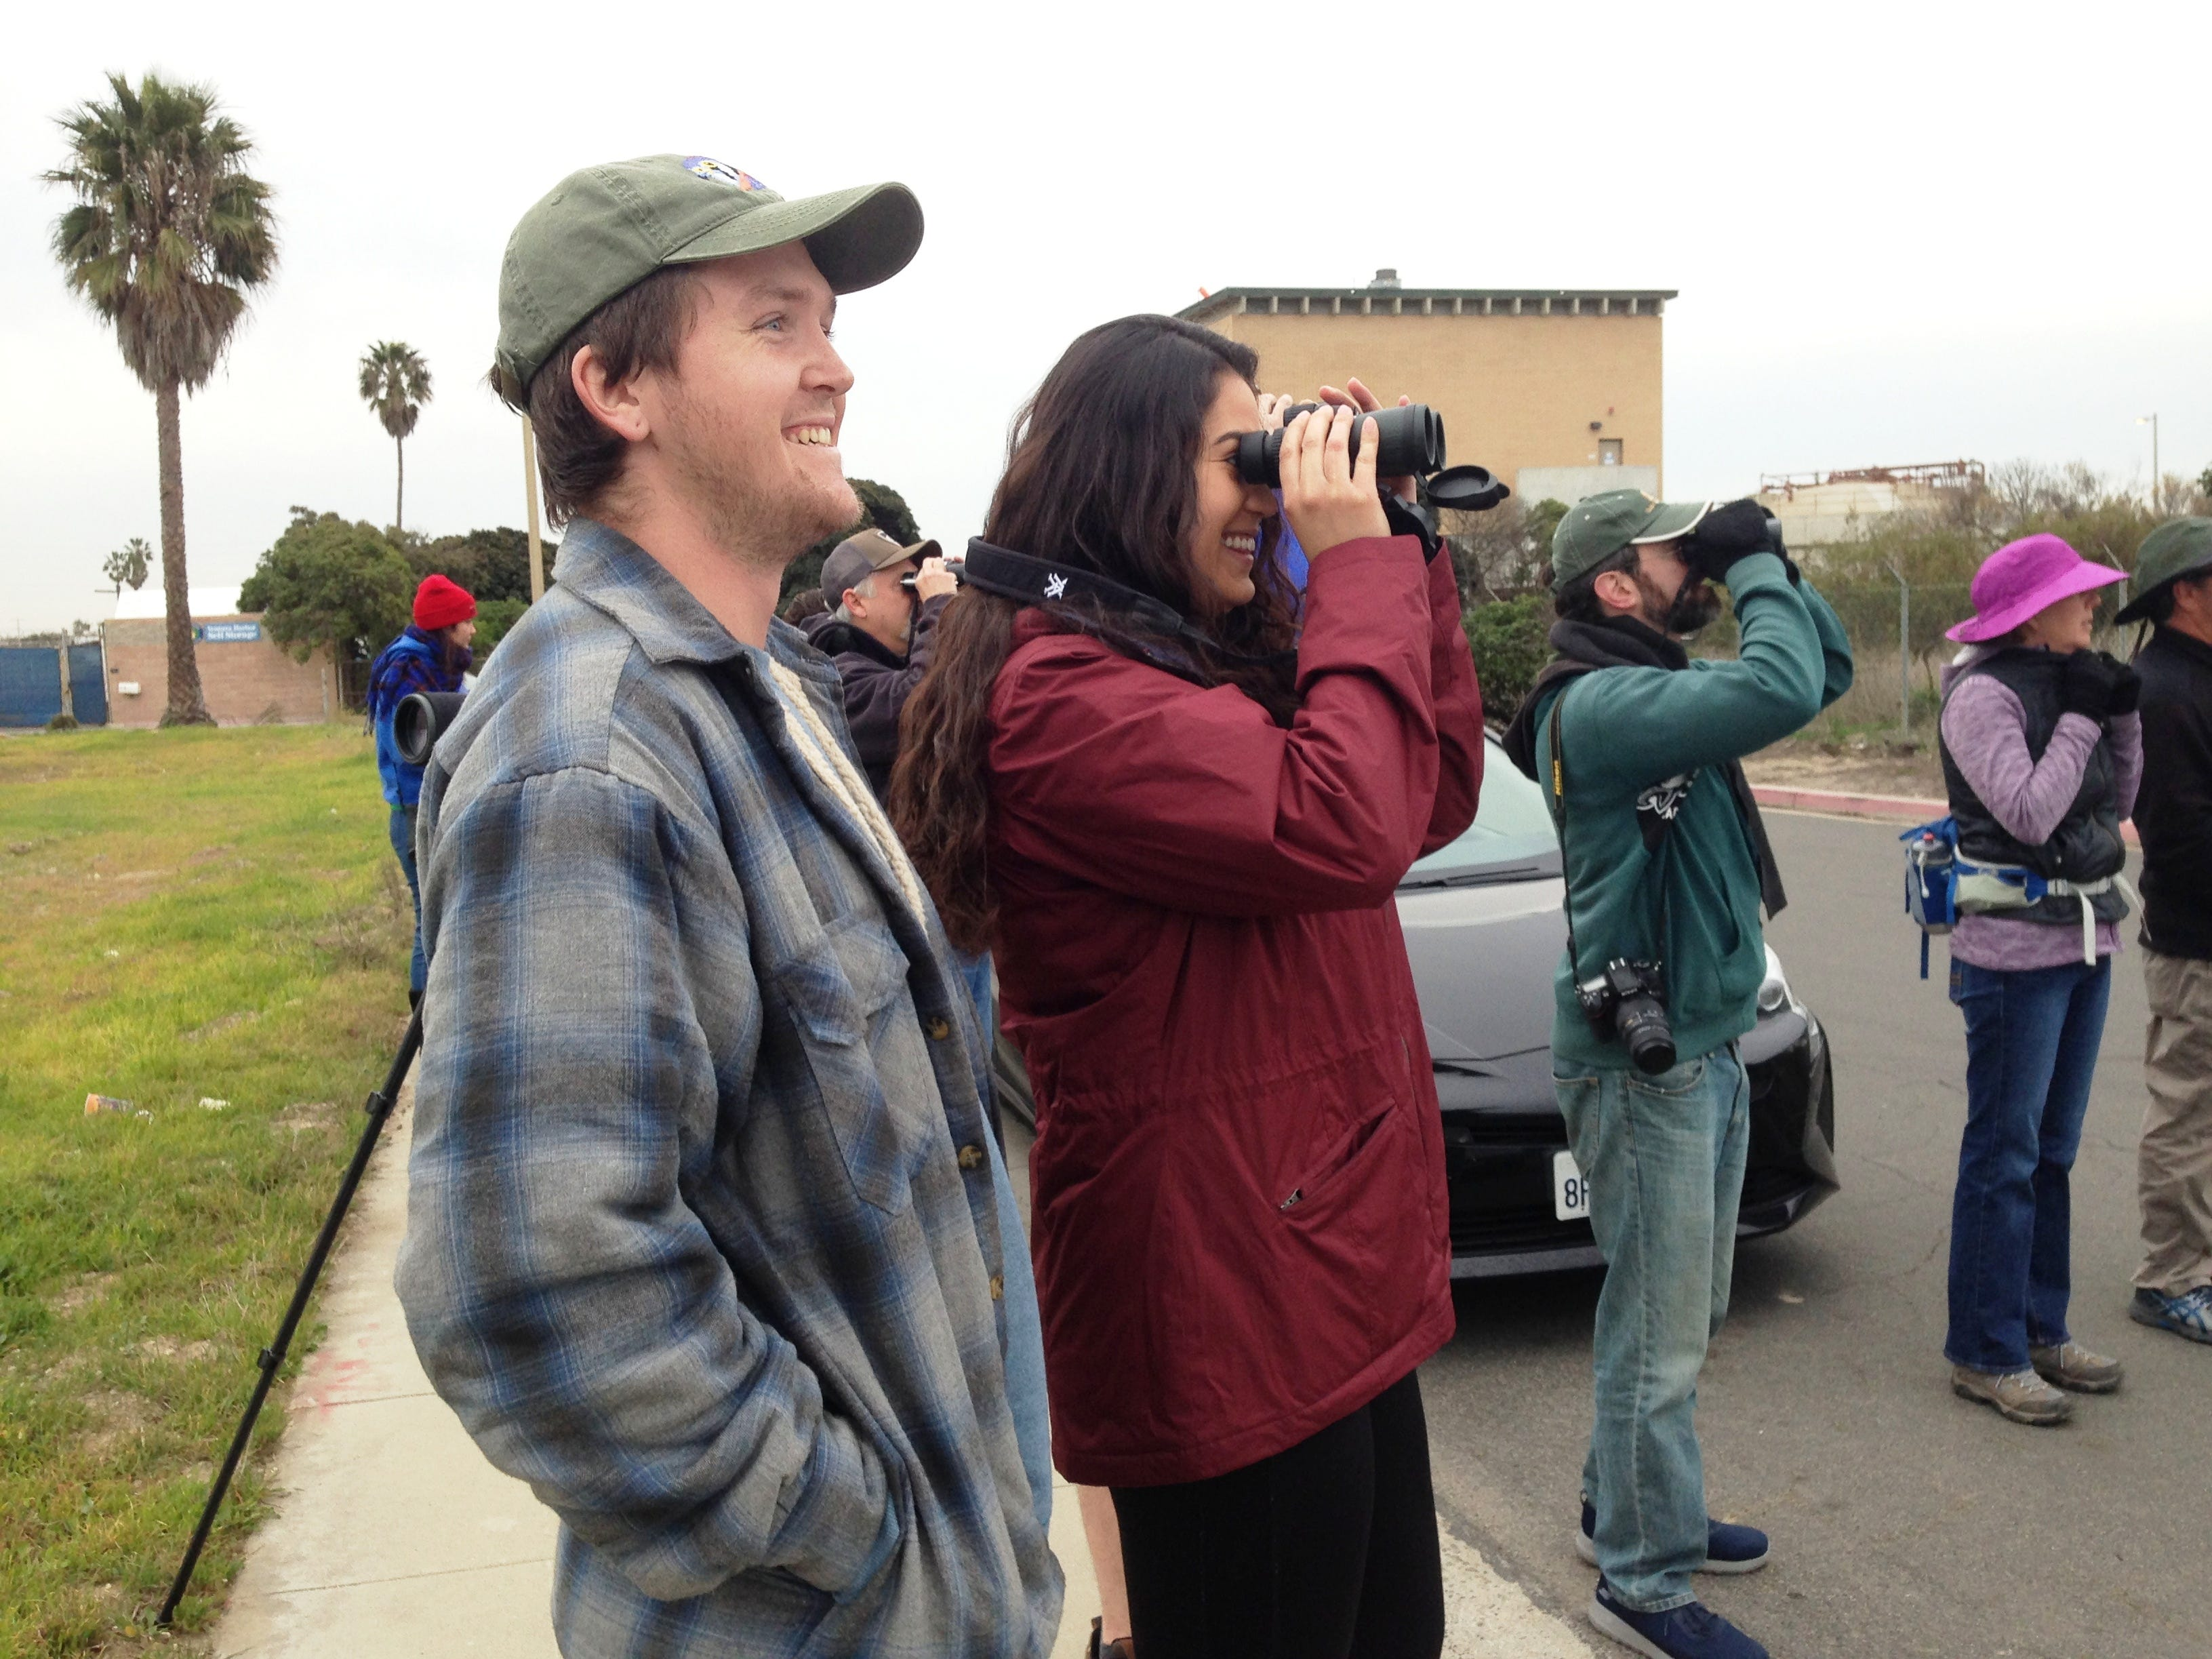 Zach Adkins and Jenna Utter look at birds from the parking area outside the settling ponds near Ventura Harbor. About 15 people gathered at this spot for the 2019 Christmas Bird Count on Saturday. Bird counts take place all over North America this time of year, with a few in the Caribbean and Latin America.